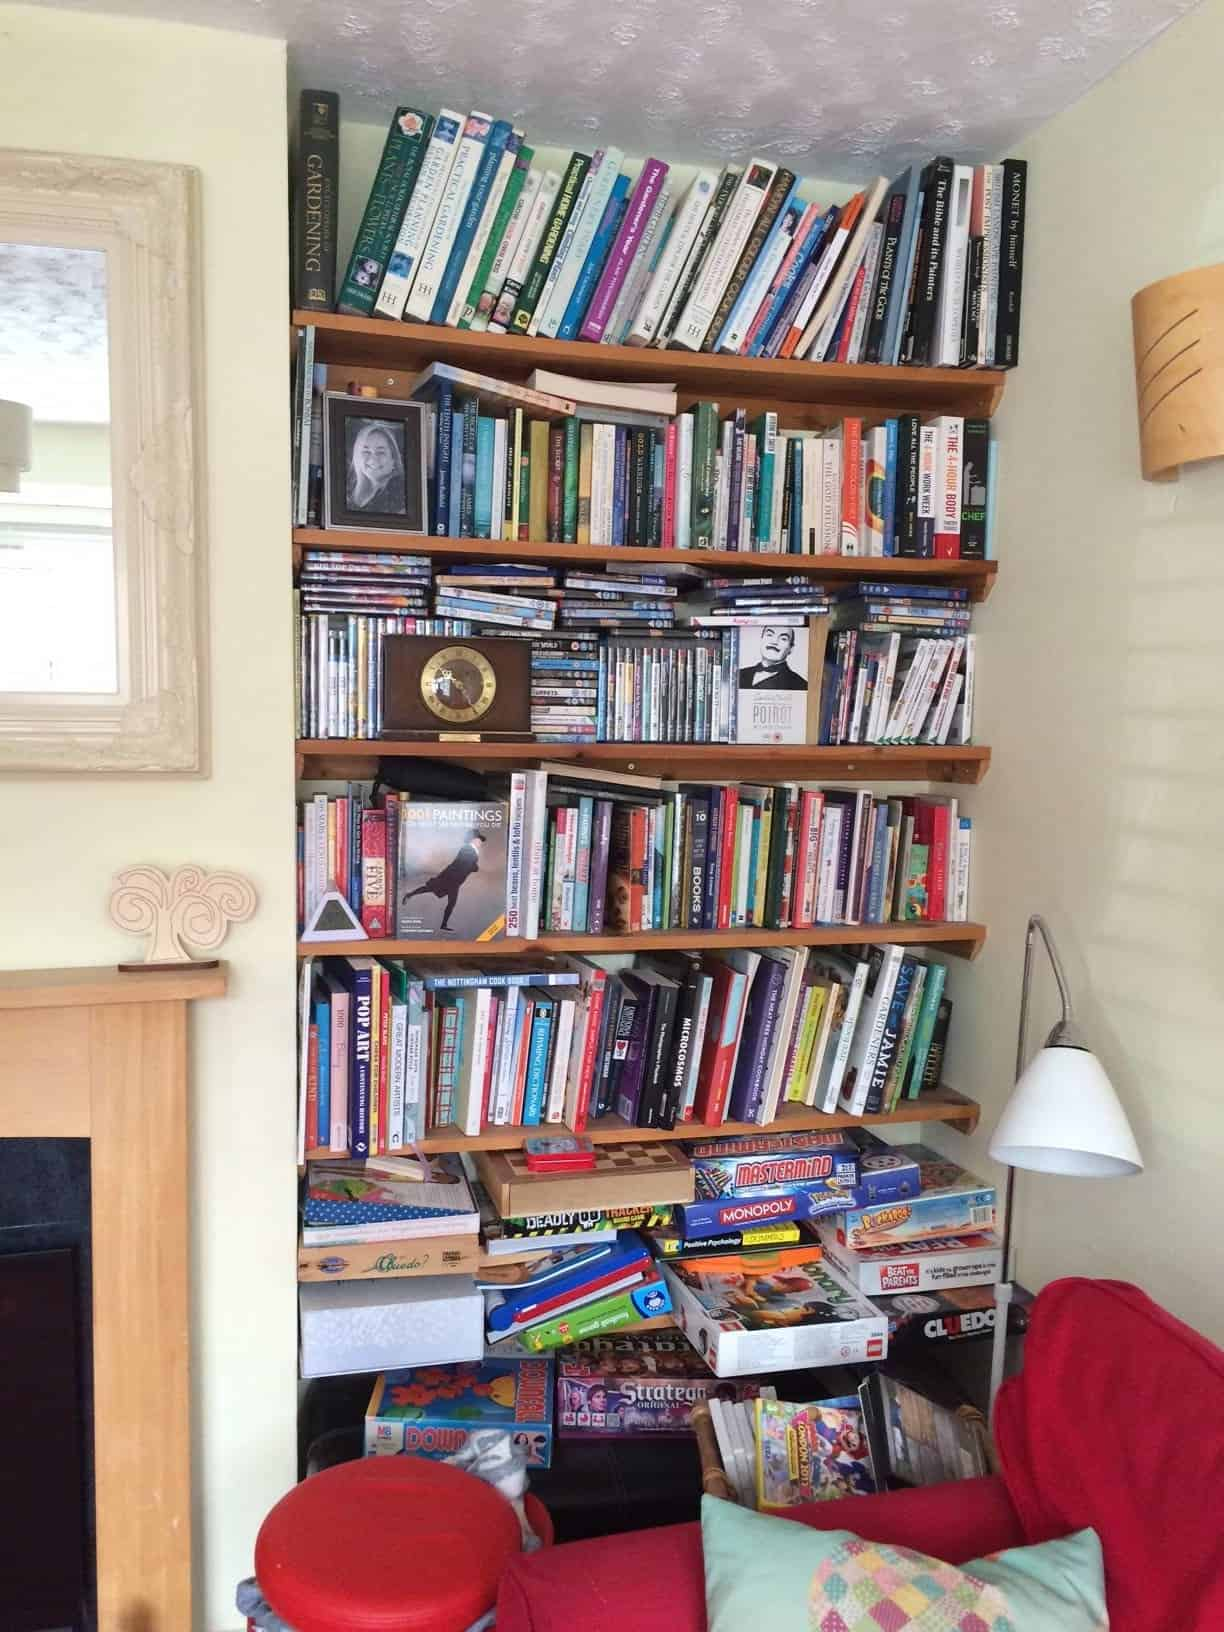 My experience of a professional declutter